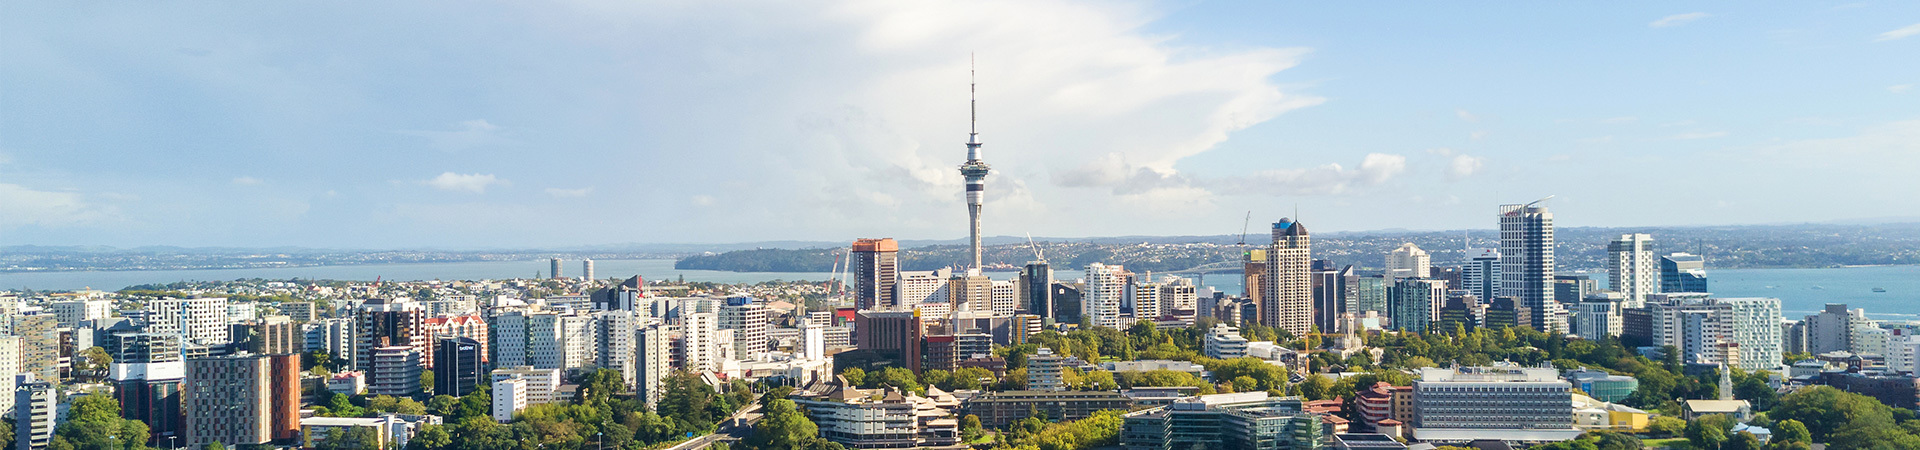 View of New Zealand's largest city, Auckland